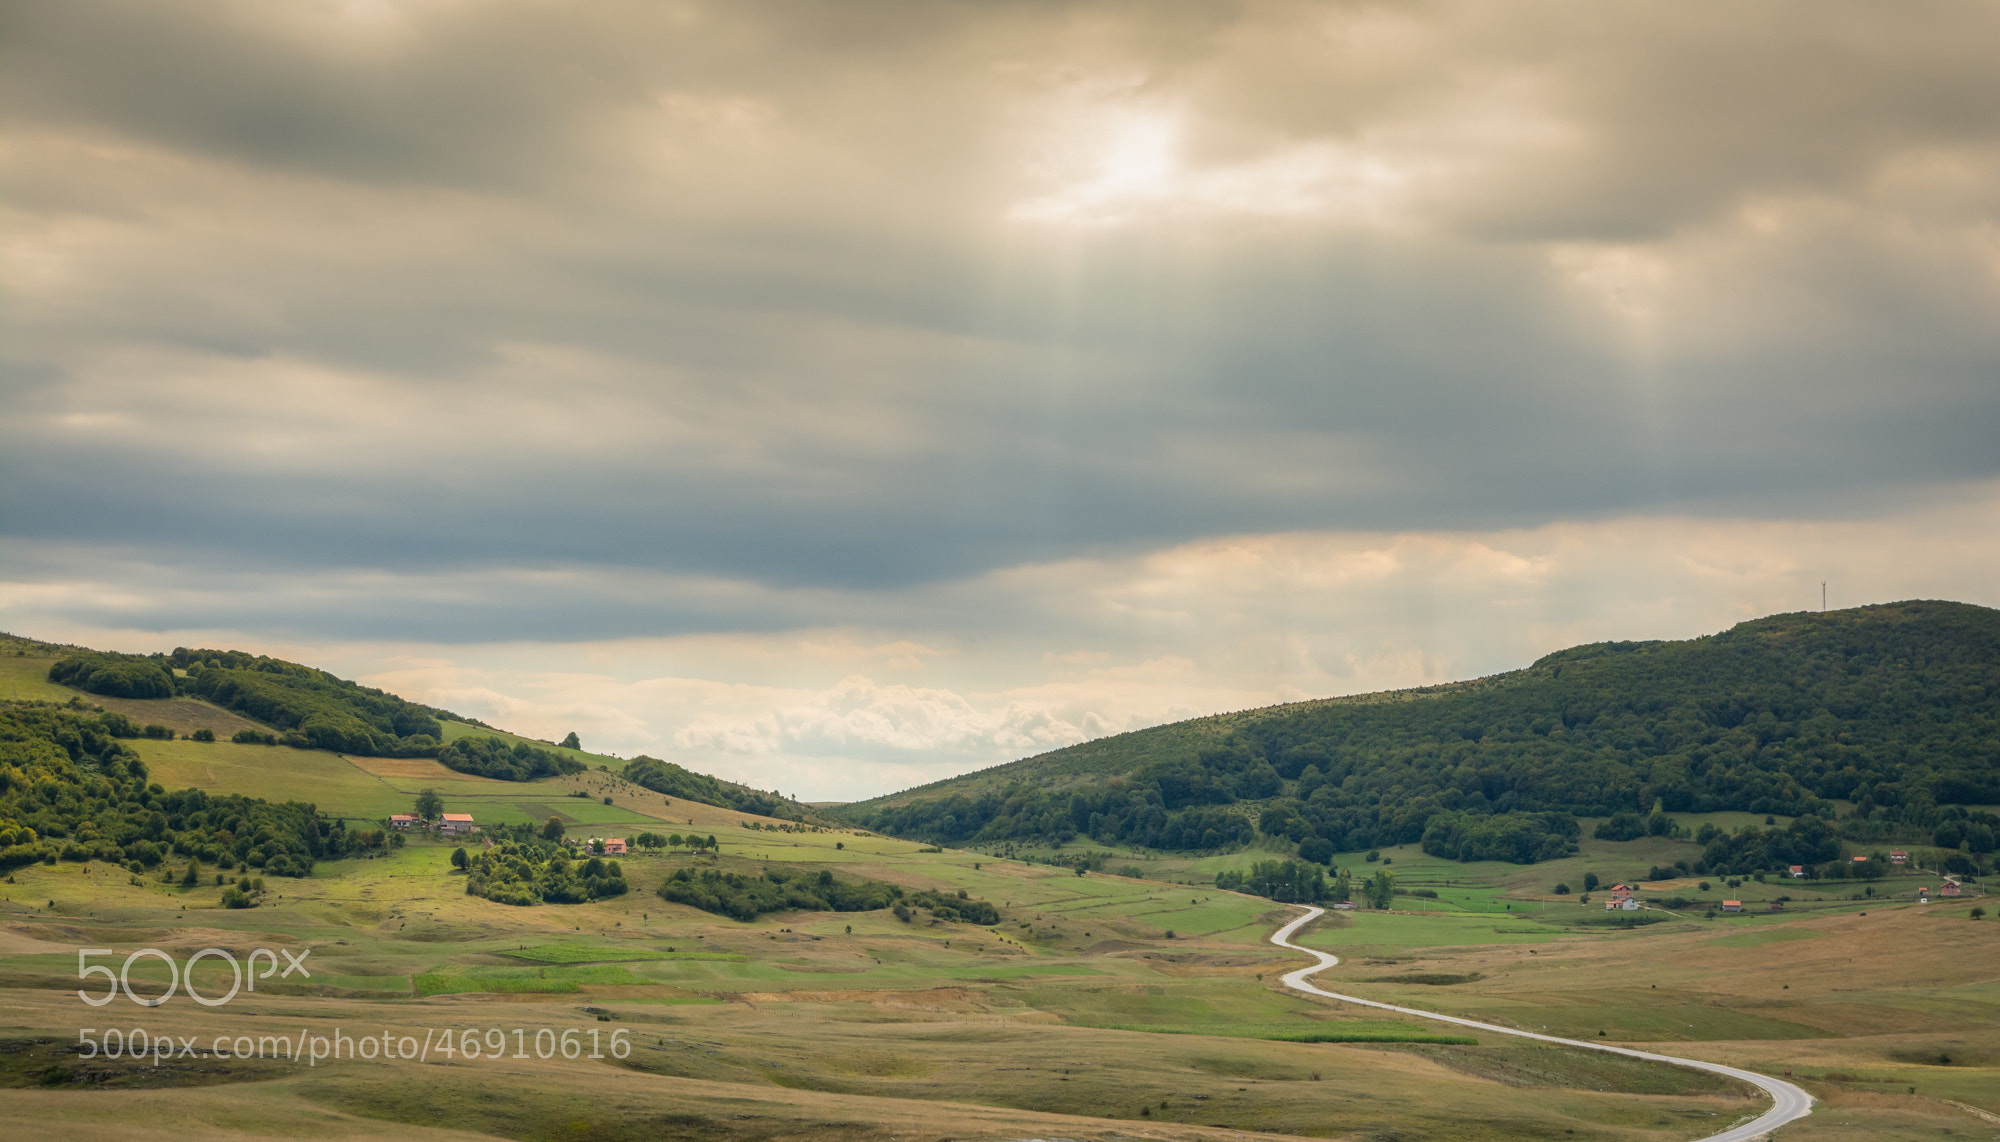 Photograph Countryside by Stevan Tontich on 500px